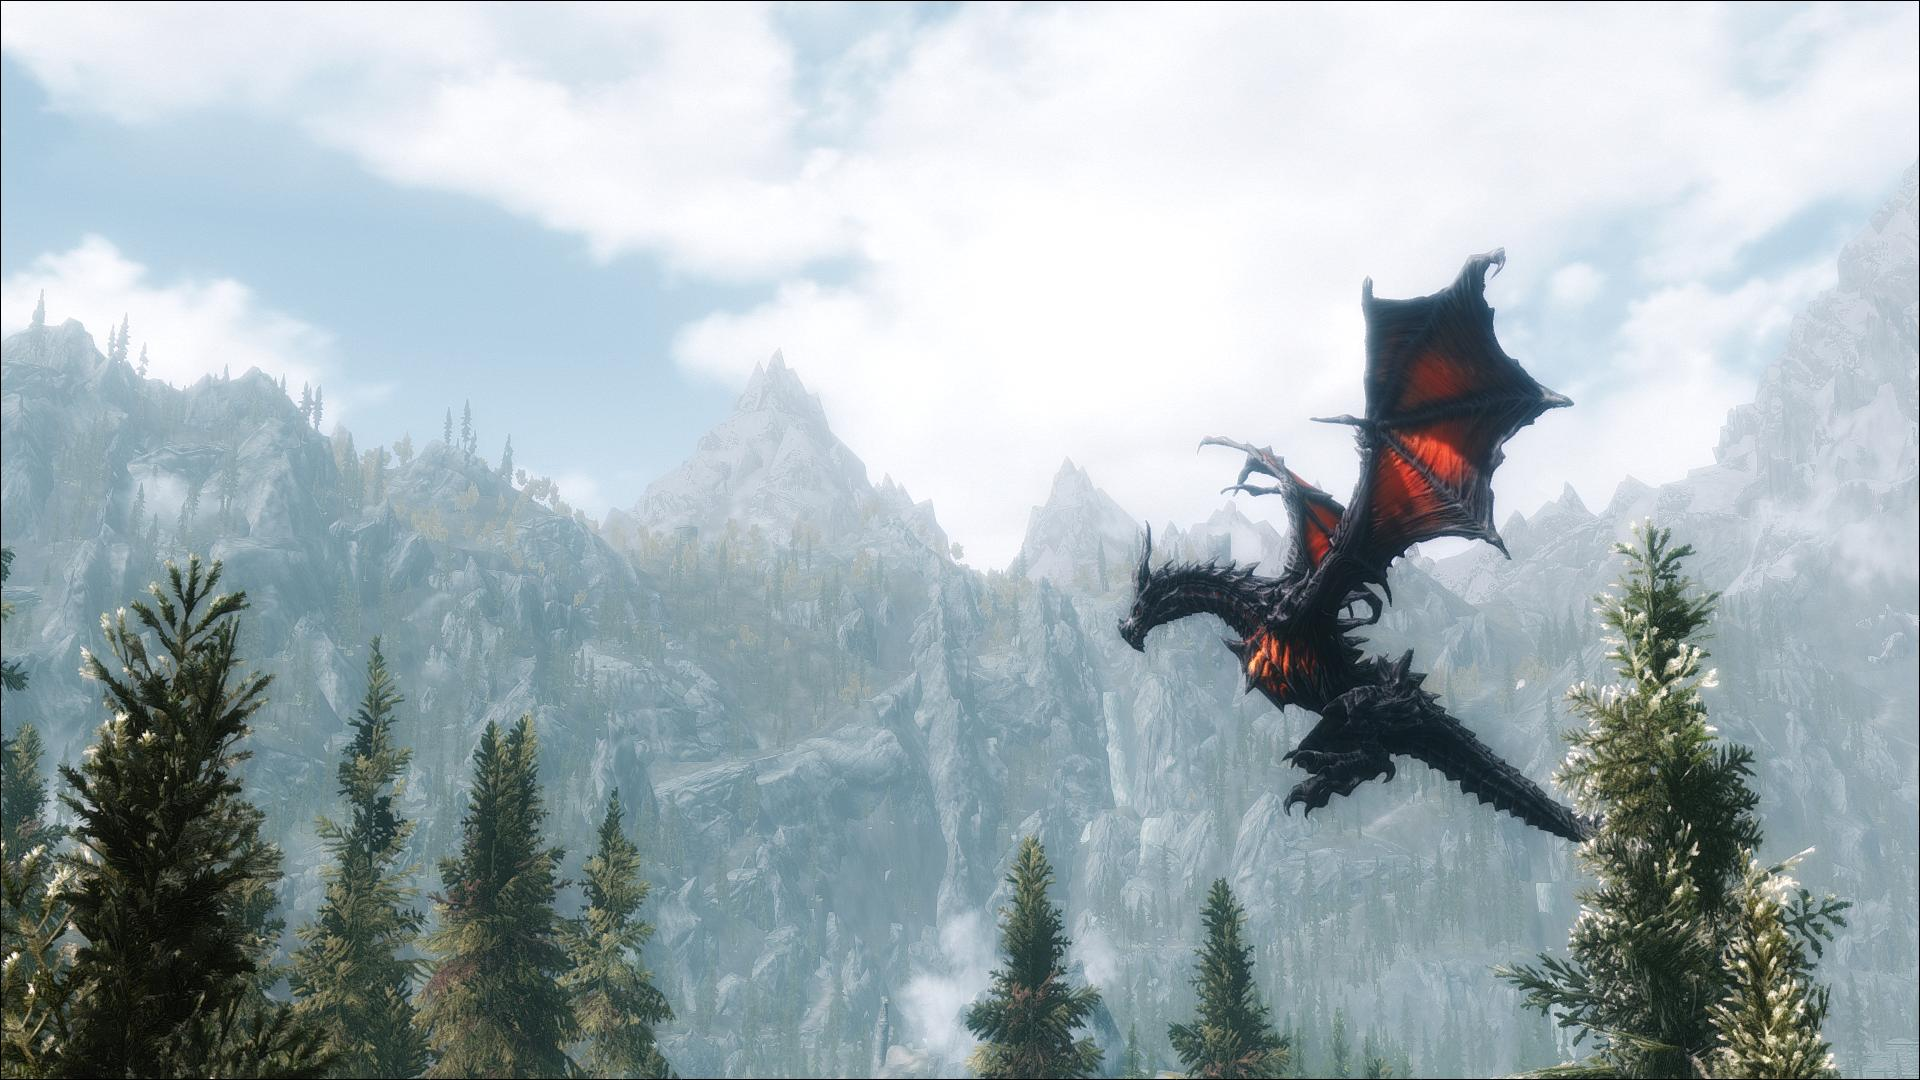 Alduin the World Eater